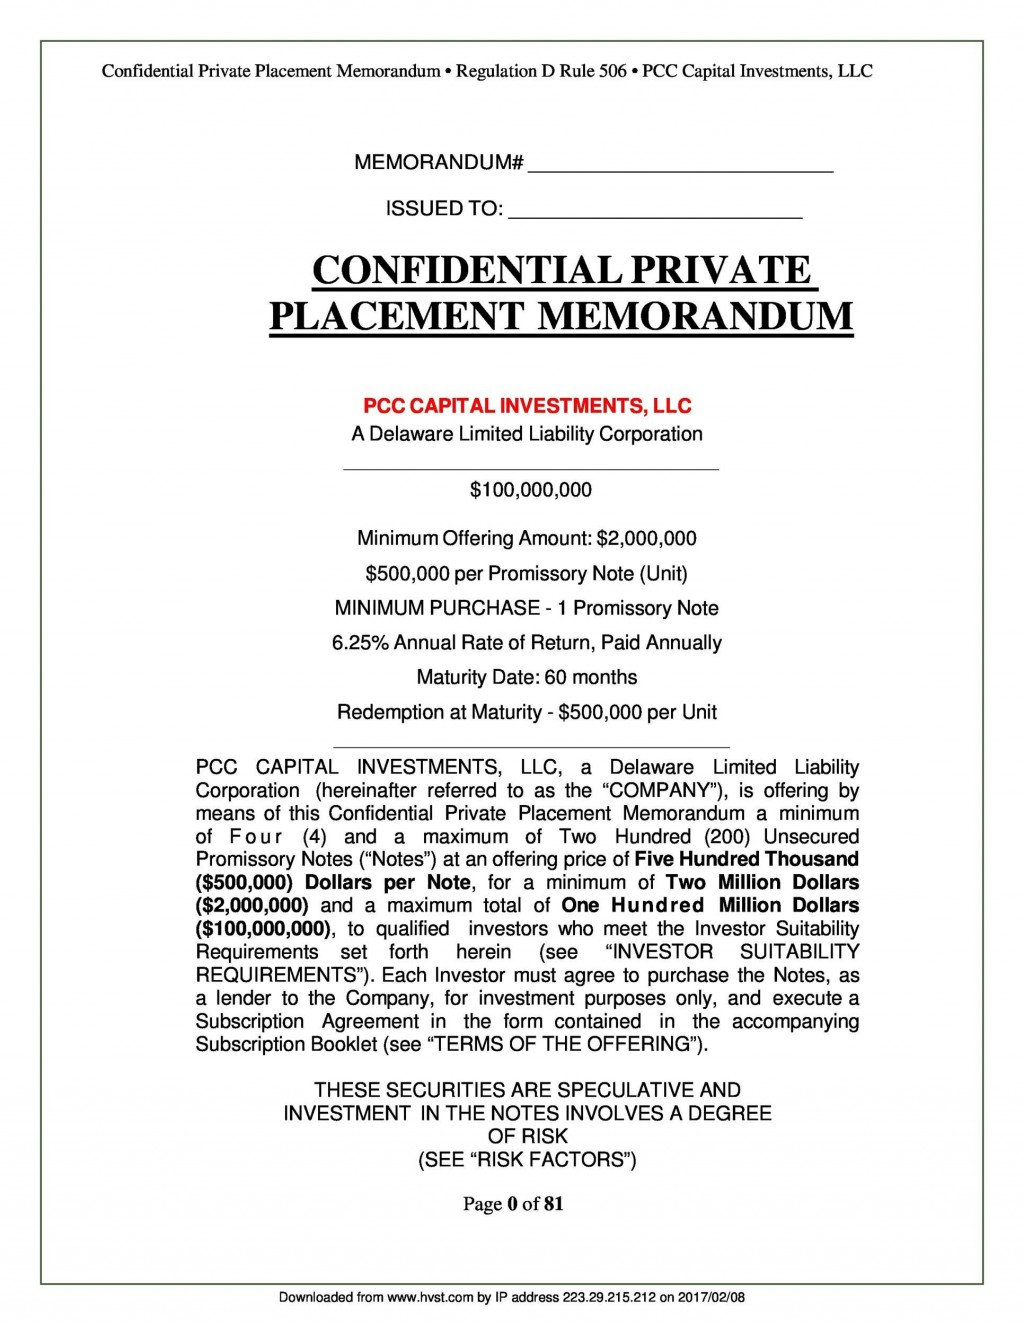 005 Amazing Private Placement Memorandum Template Concept  Real Estate SingaporeLarge